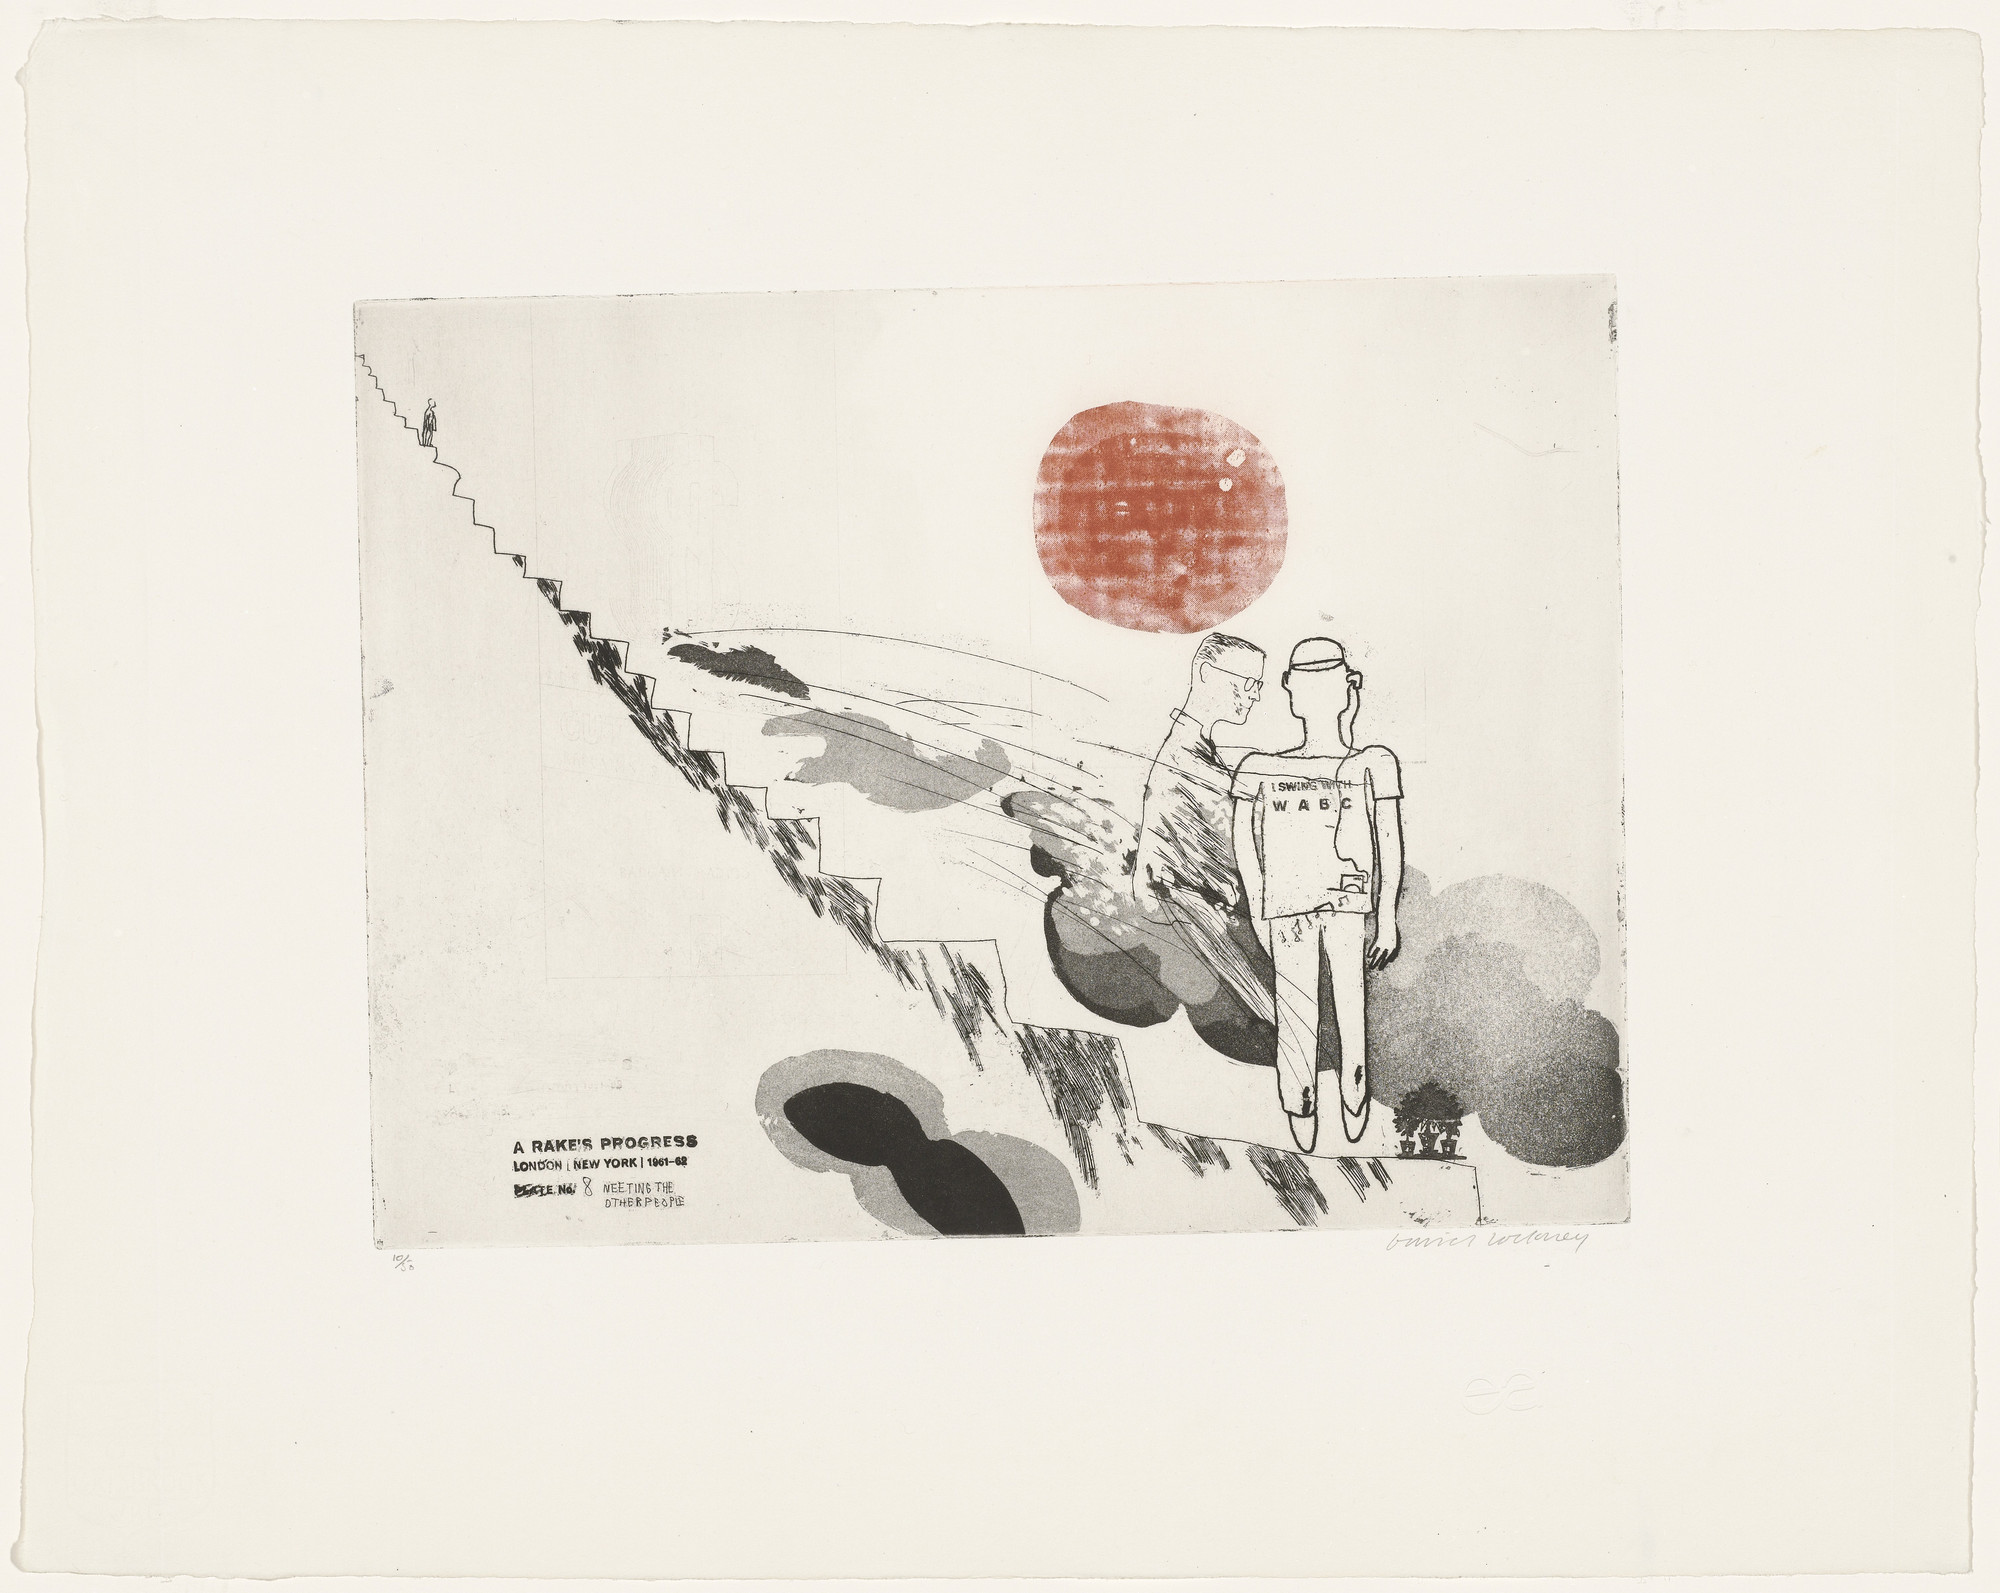 David Hockney. Meeting the Other People (plate 8) from A Rake's Progress. 1961–62, published 1963